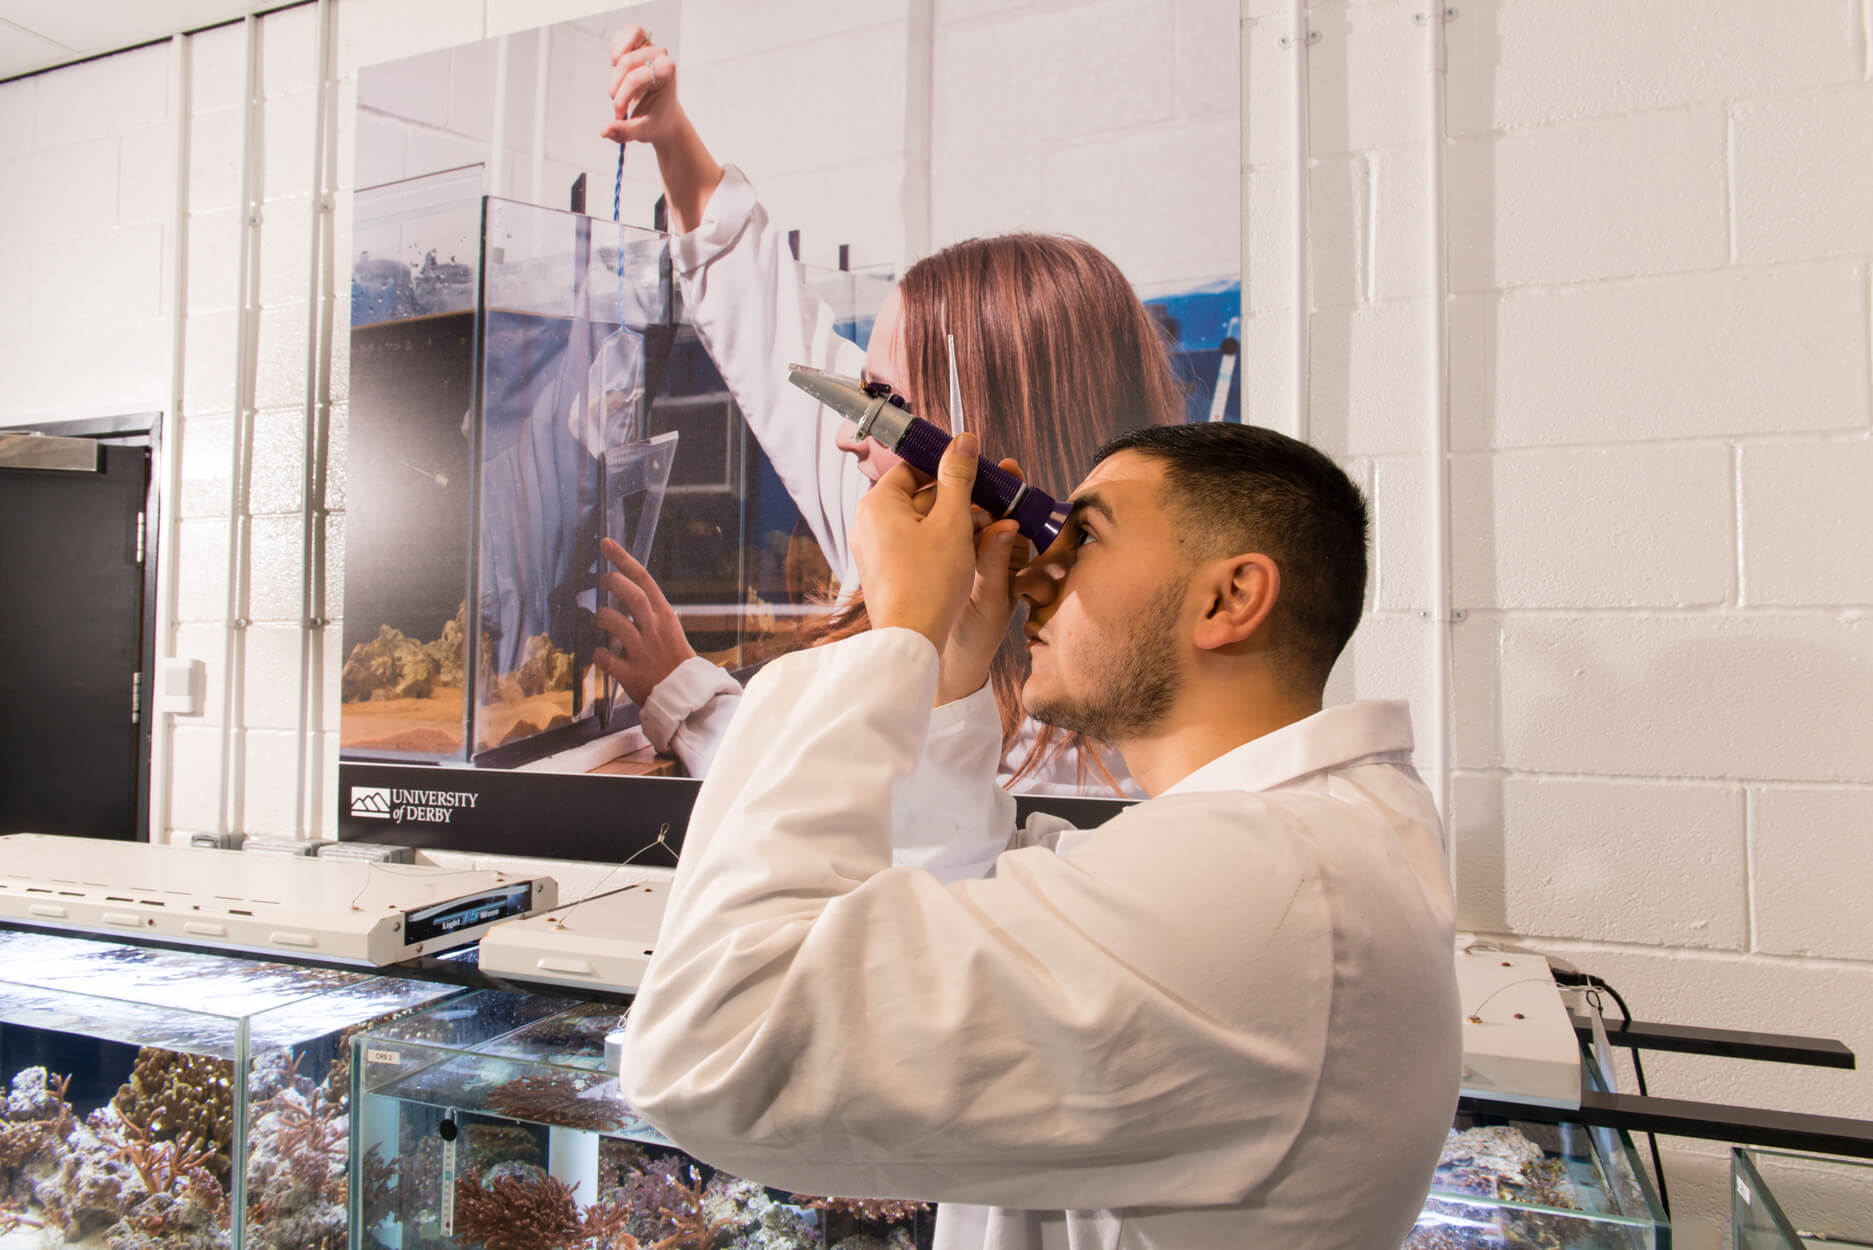 Students in the Aquatic Research Facility using a microscope device